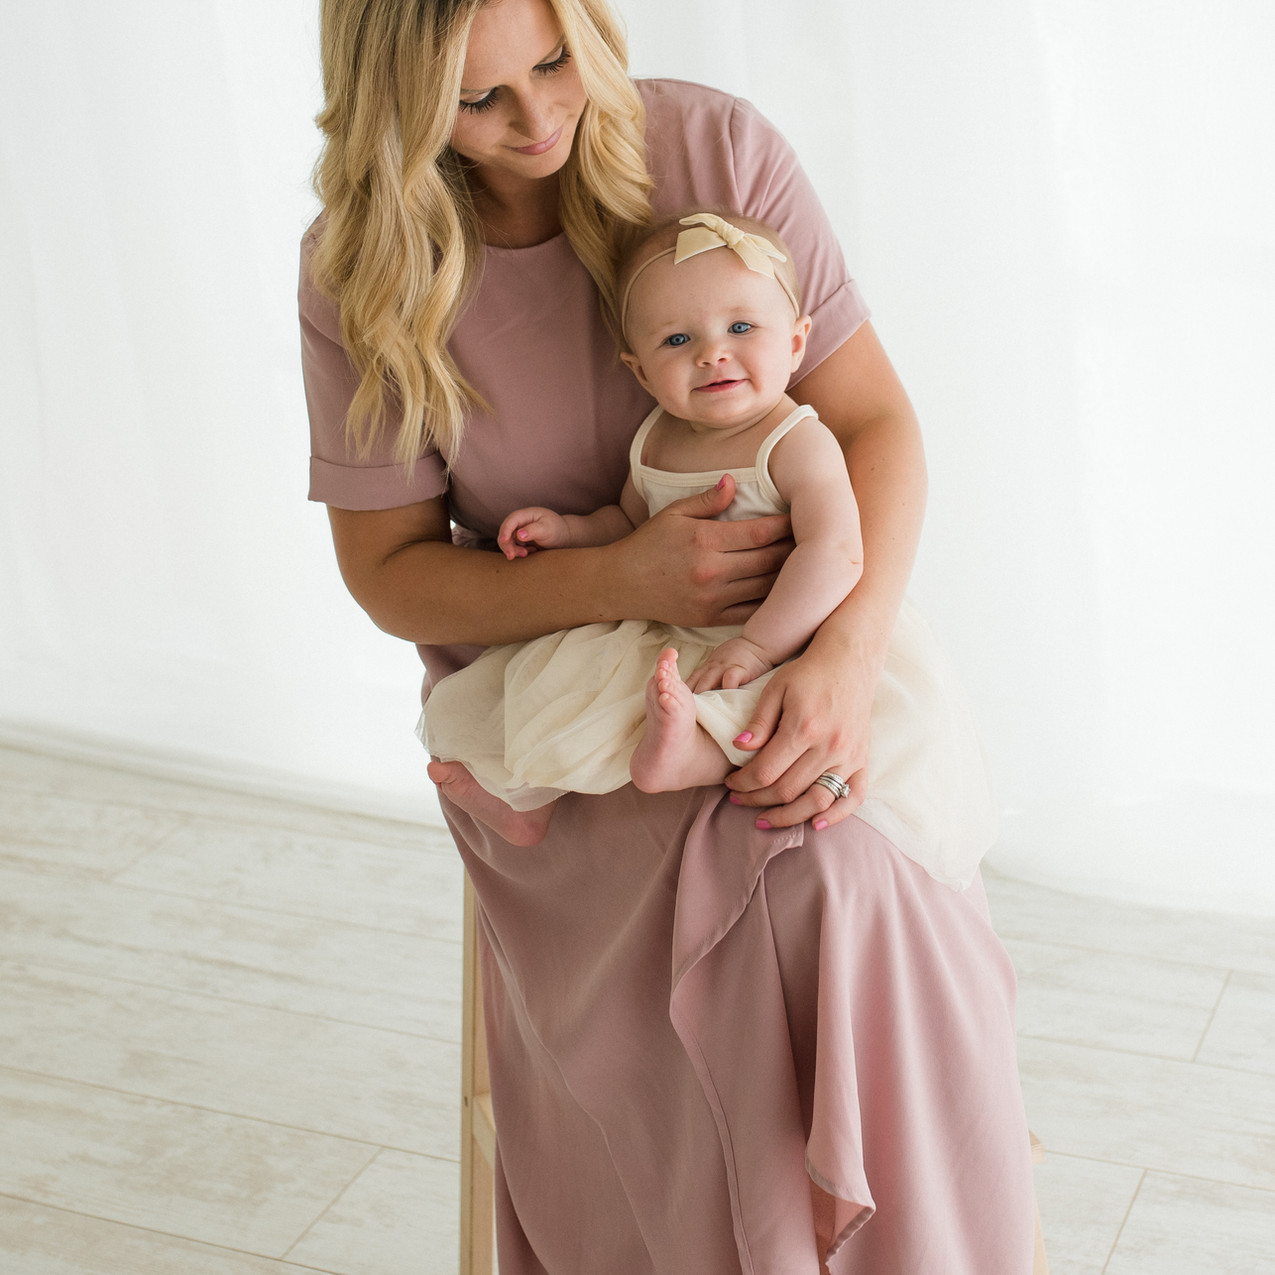 19C-Photographer-Baby-Sitter-Session-6mo